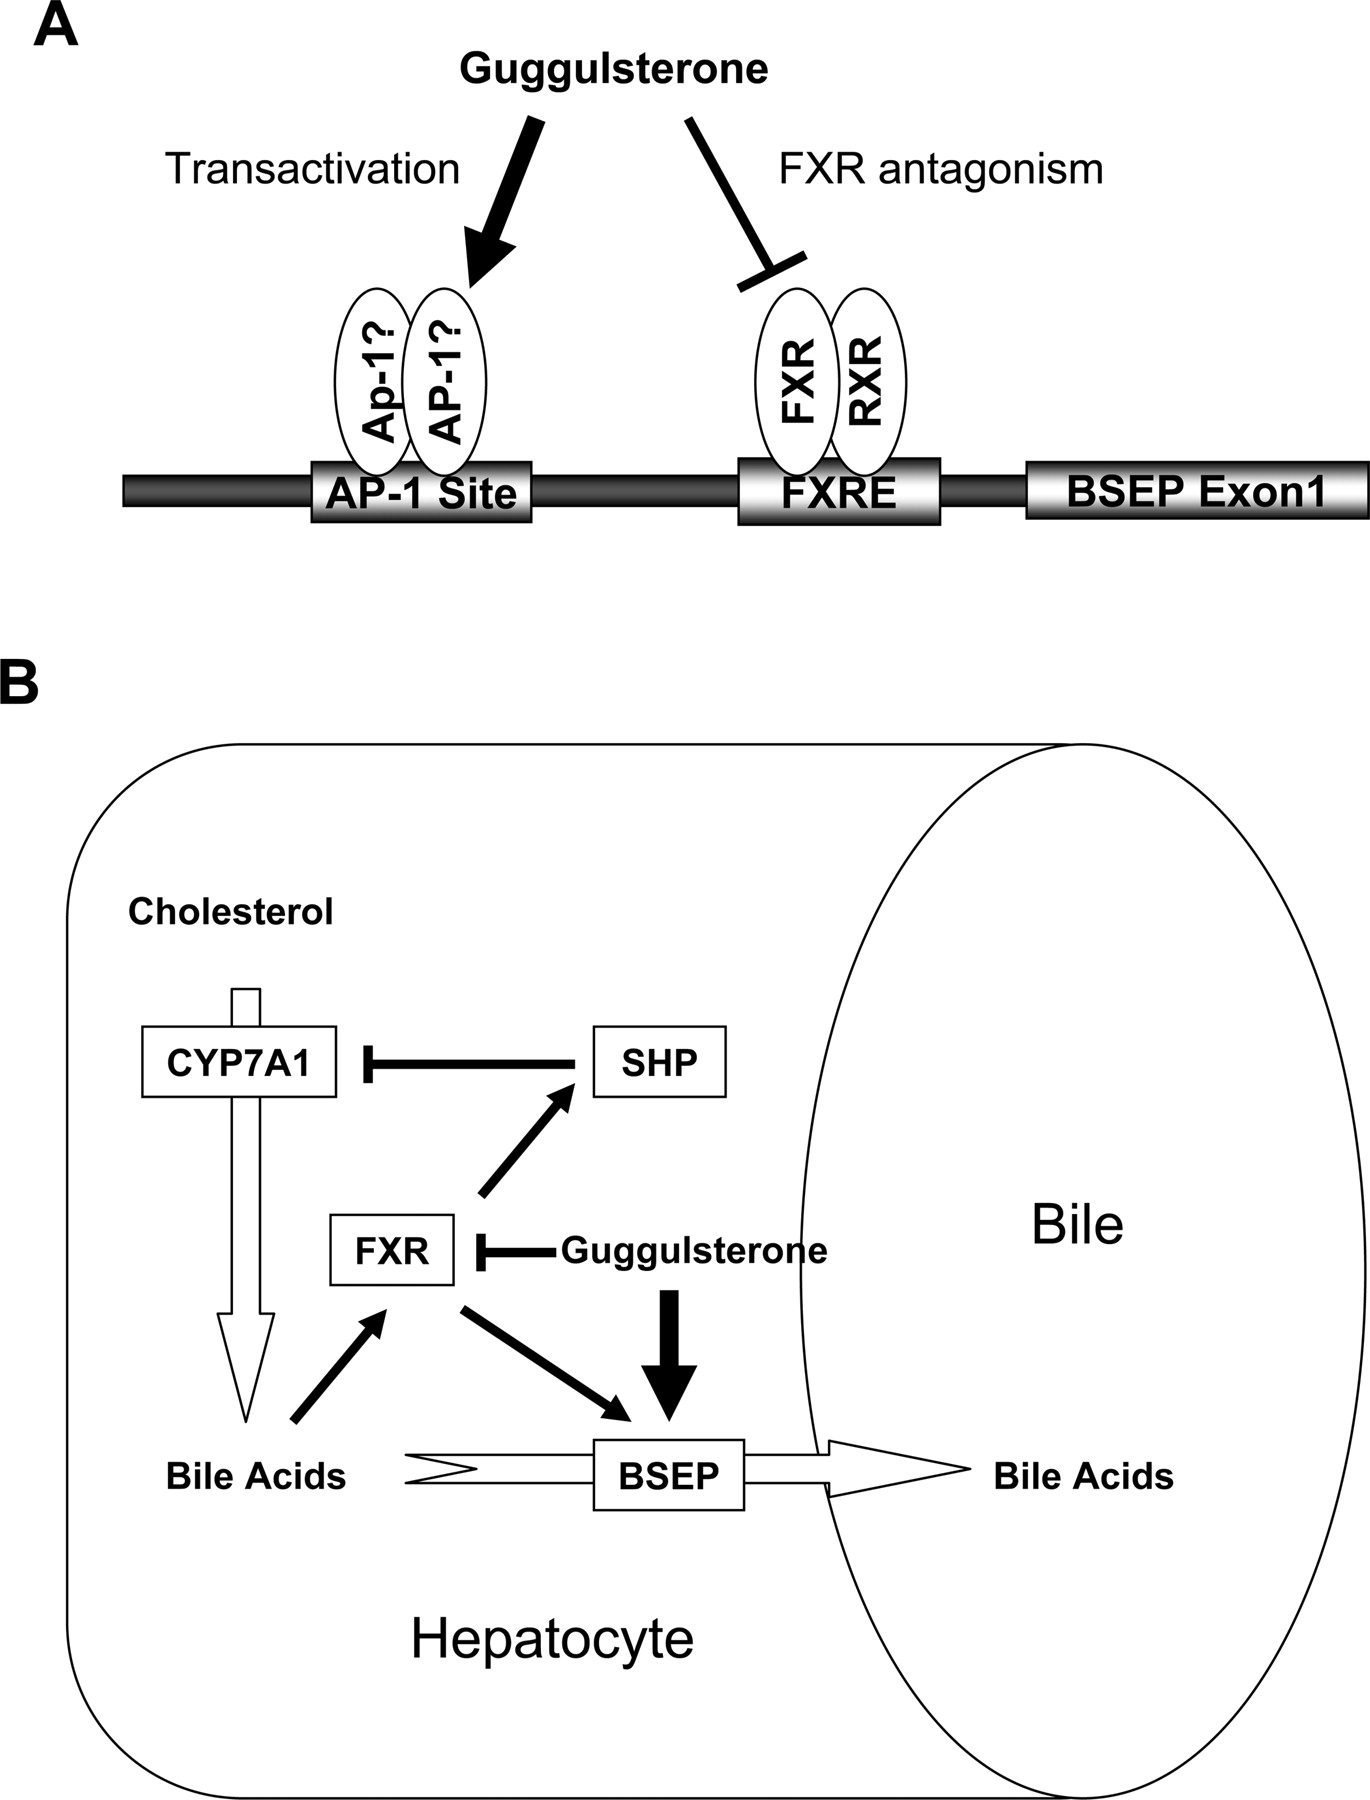 The Hypolipidemic Agent Guggulsterone Regulates the Expression of ...